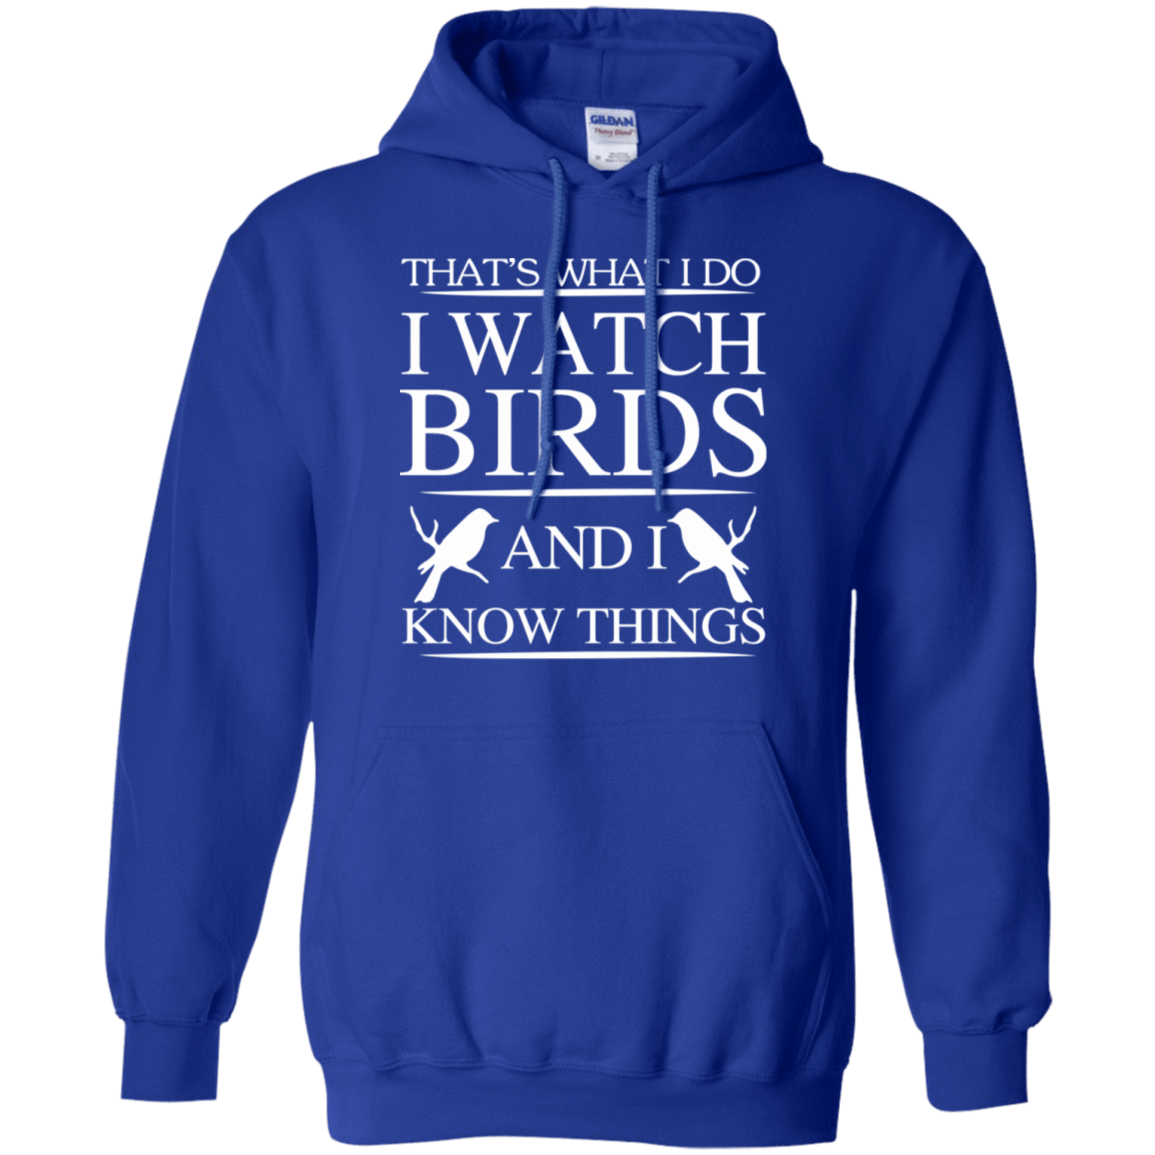 That's What I Do I Watch Birds And I Know Things 541-4765-72789238-23175 - Tee Ript